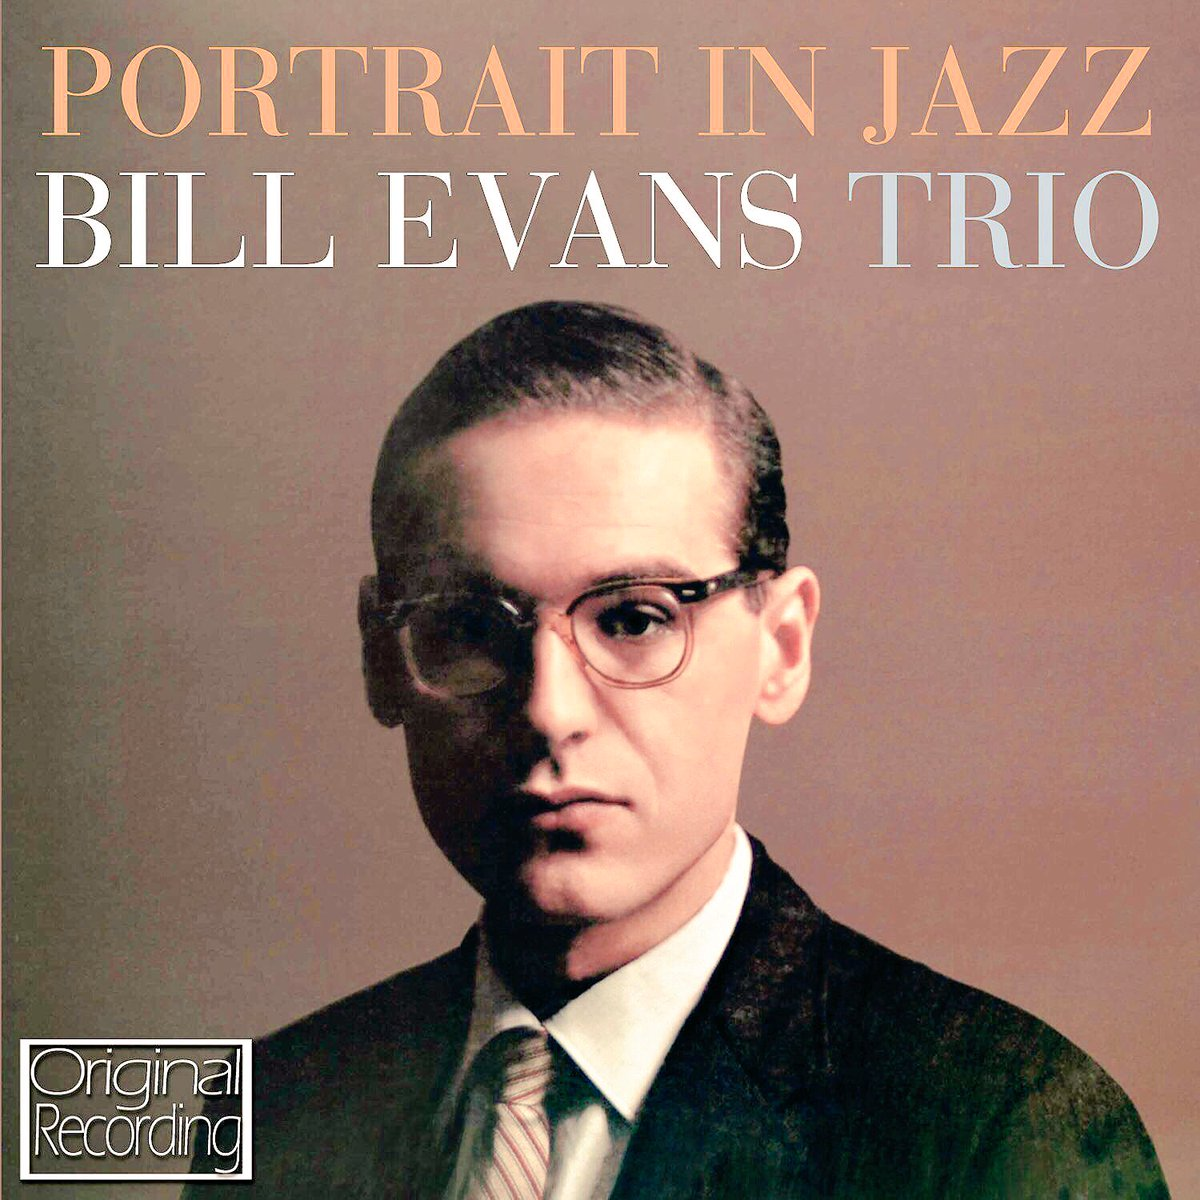 """Bill Evans """"The Peacocks"""" From the album: """"You Must Believe In Spring"""" youtu.be/-BIlJRa-1pw"""